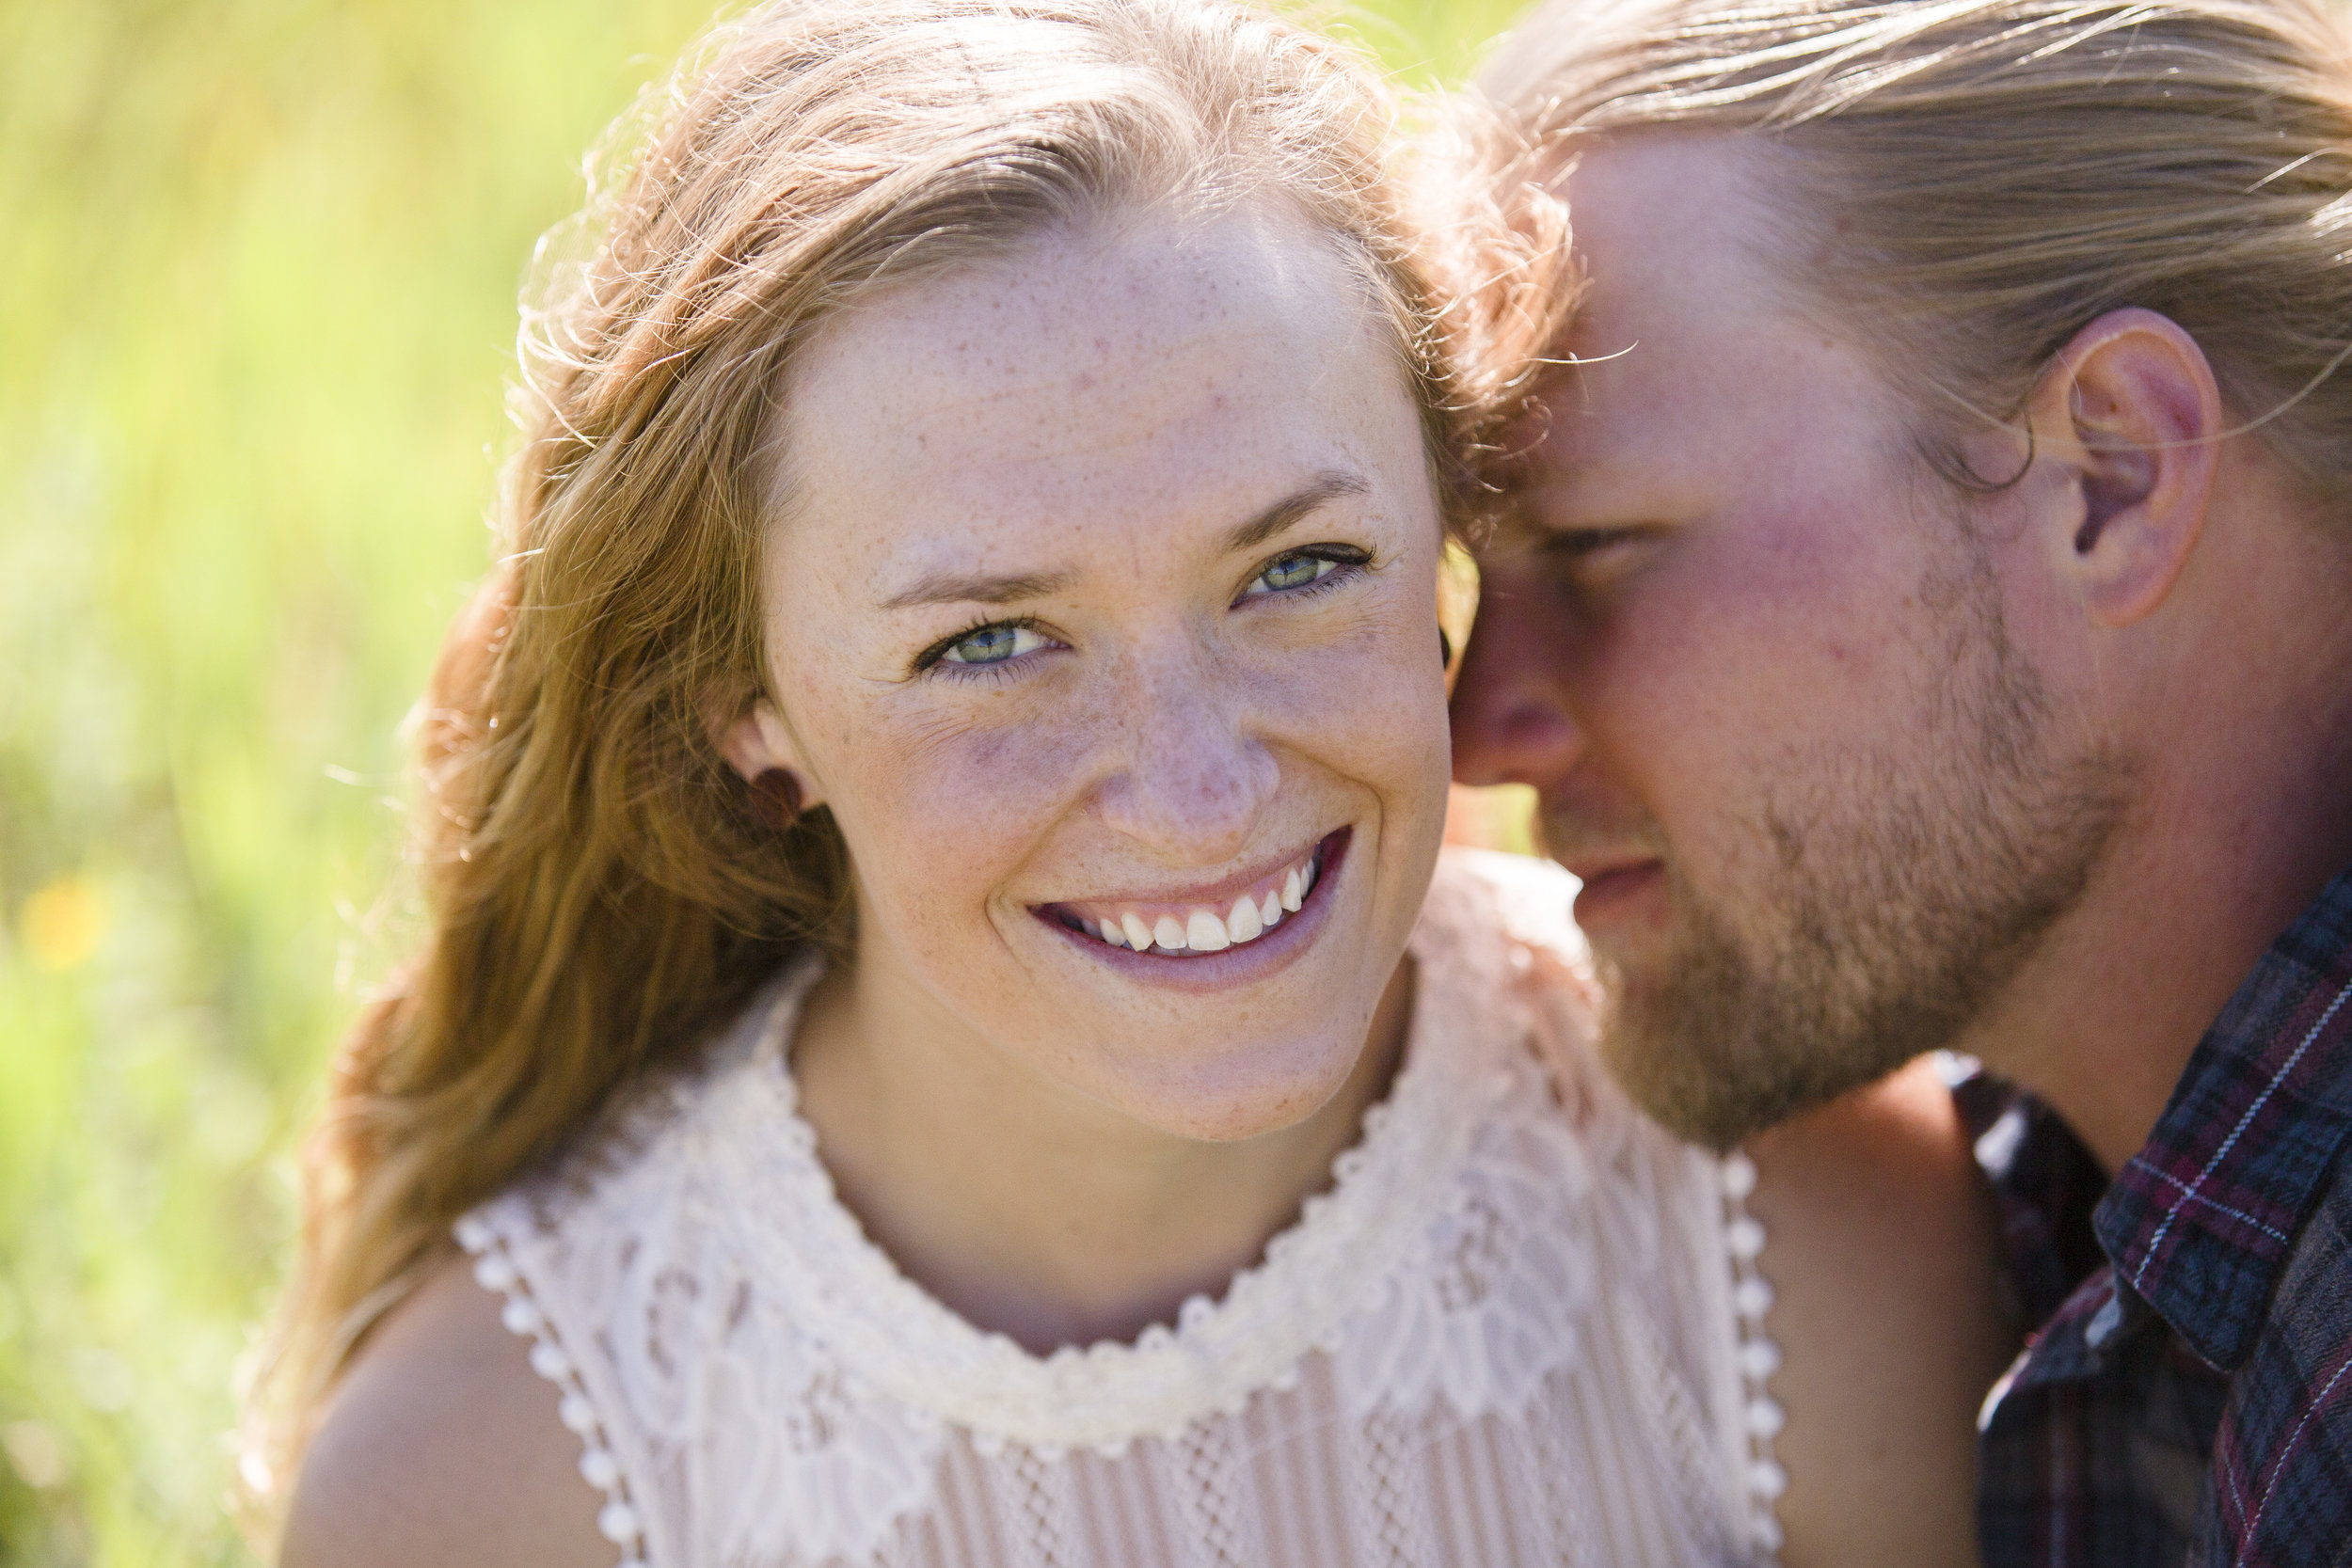 kristen-vance-2016-summer-white-ranch-open-space-golden-colorado-engagement-11.jpg